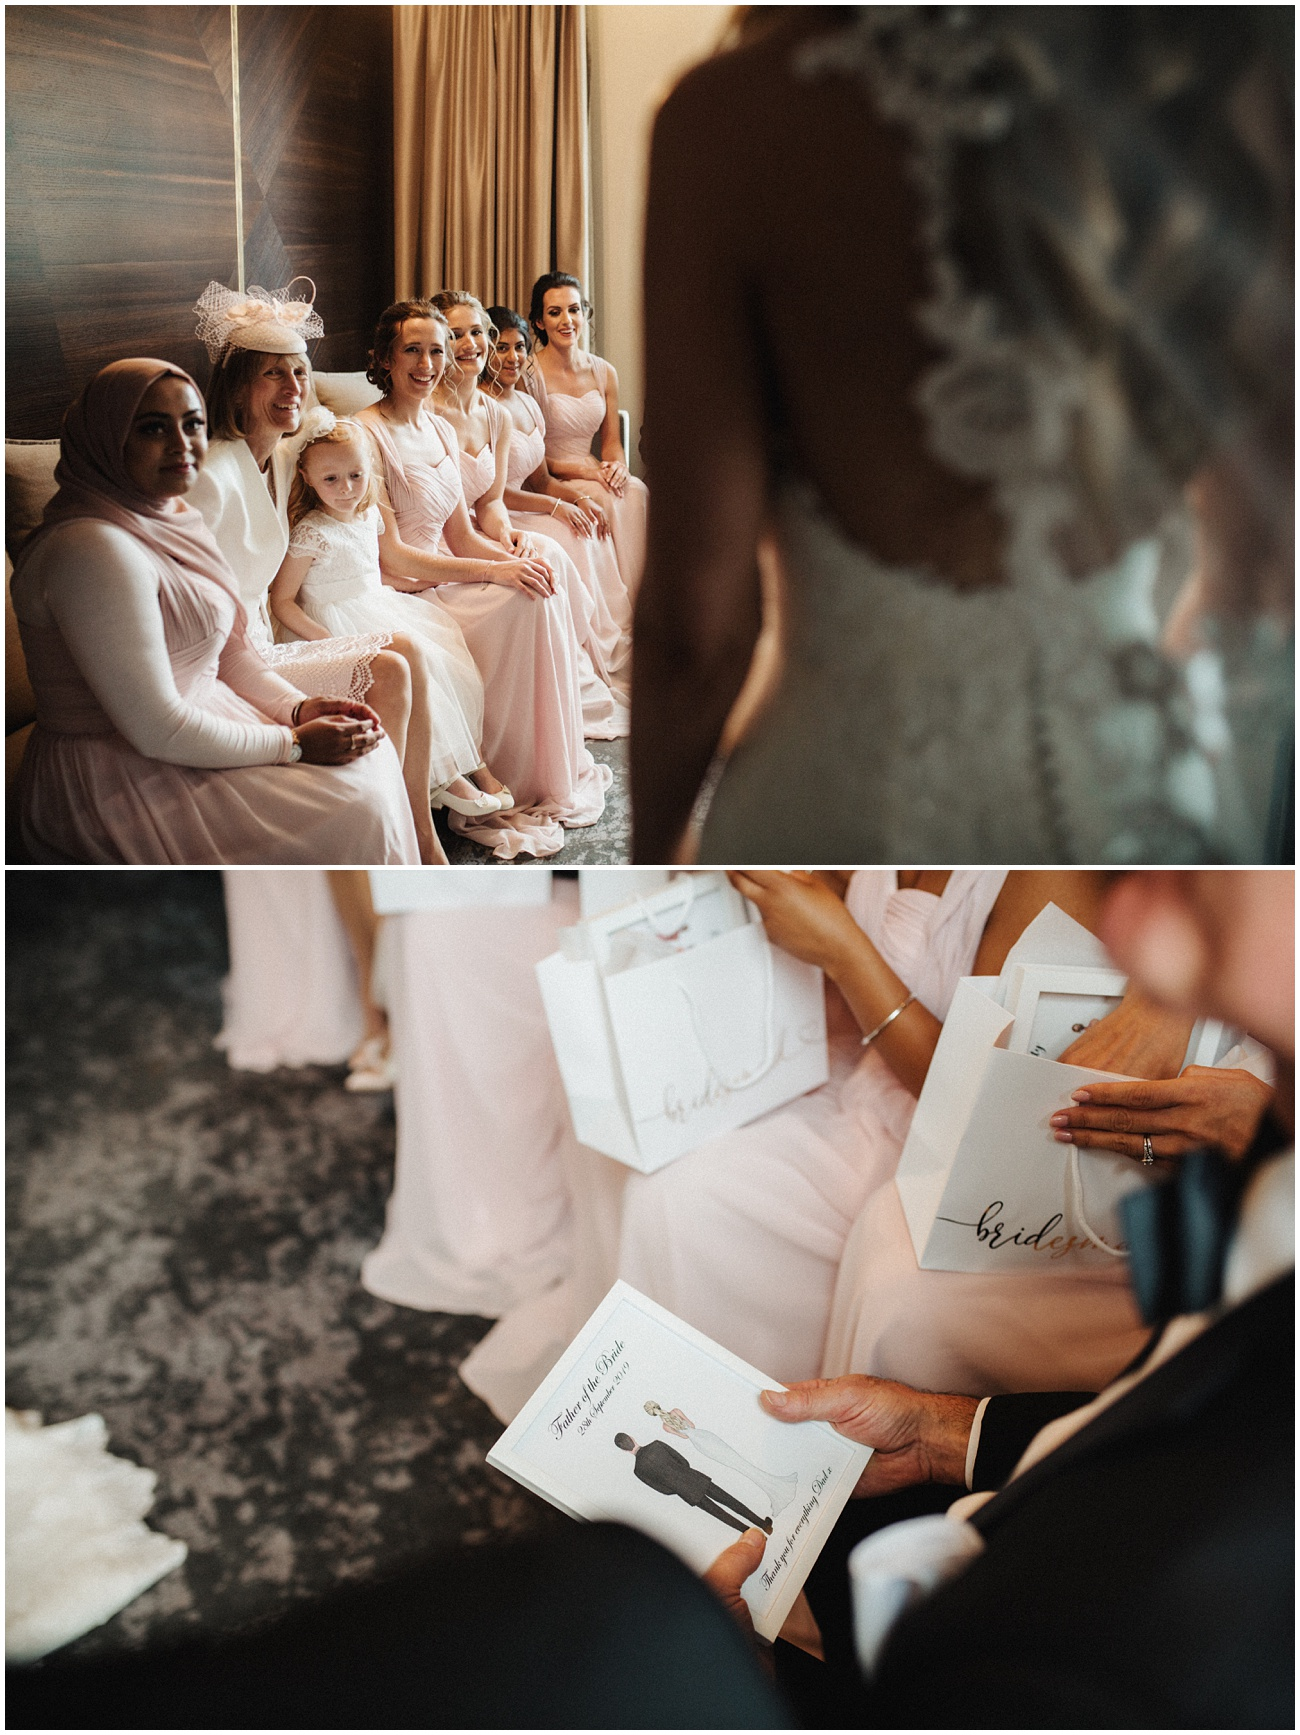 The bride shows her wedding dress to her happy bridesmaids and then receive wedding gifts to open